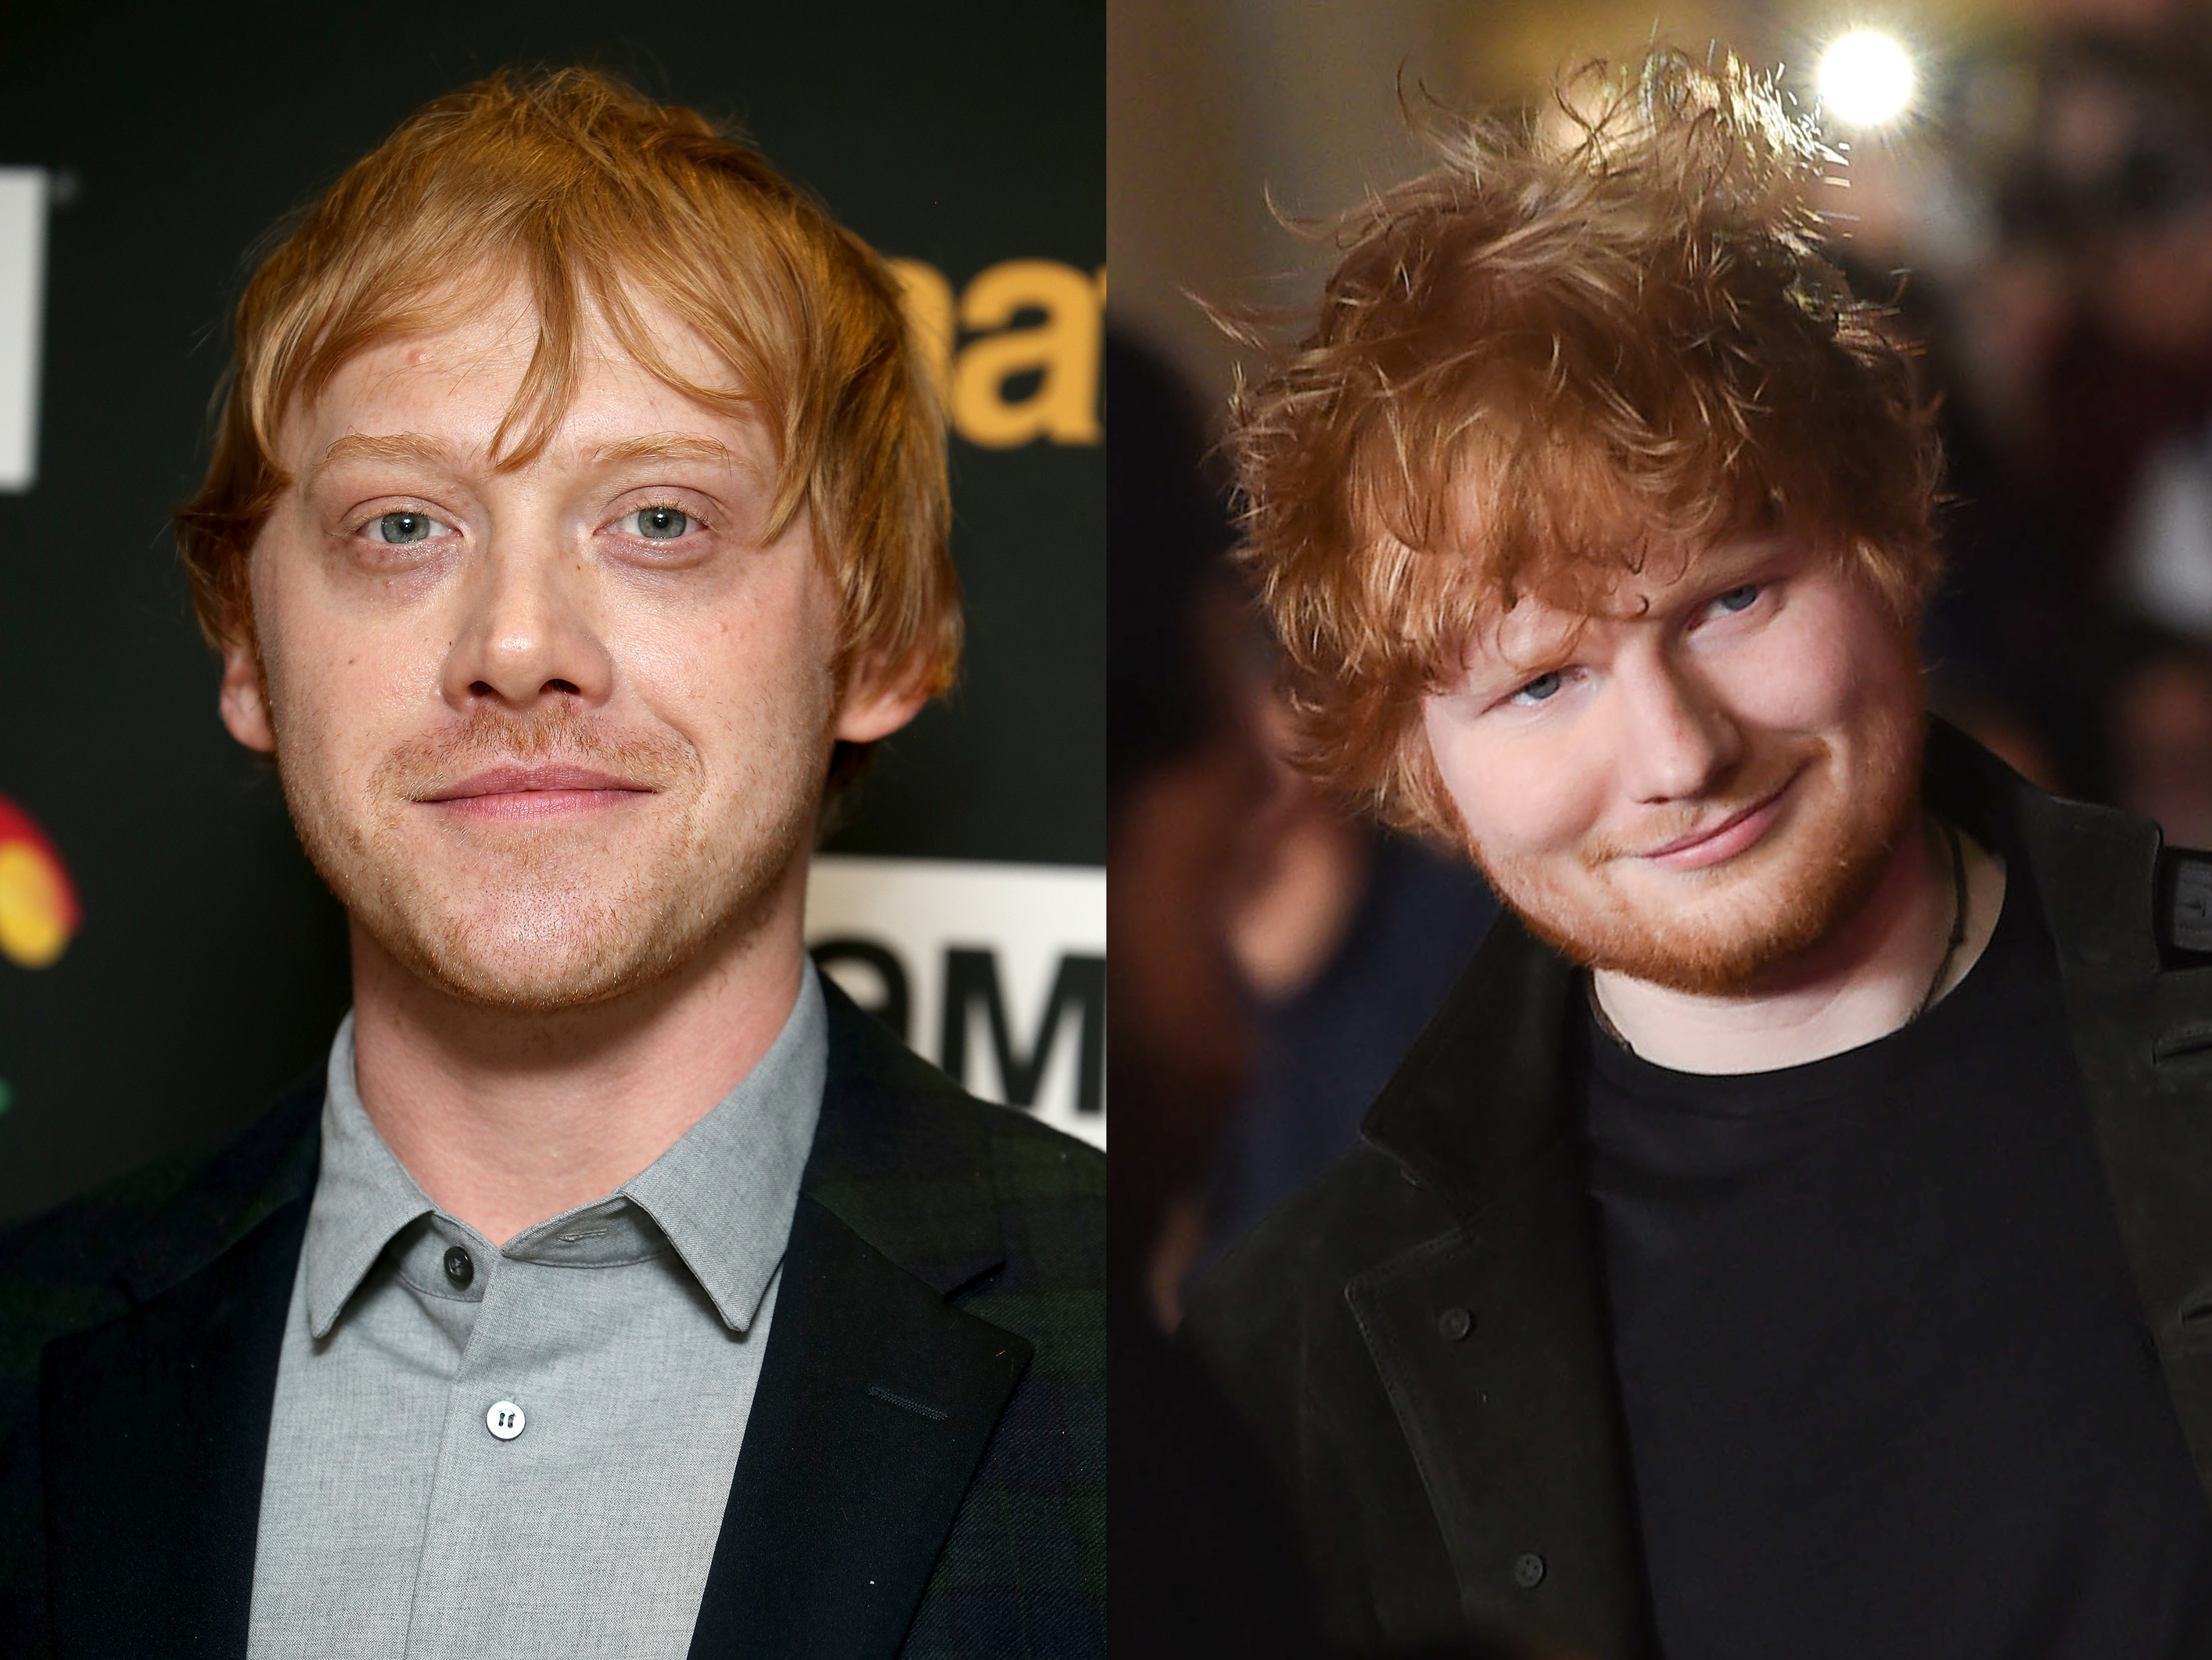 Rupert Grint (L) attends the 'Snatch' TV show premiere at BT Tower in London, England on Sept. 28, 2017. Ed Sheeran (R) attends the 19th NRJ Music Awards in Cannes, France on Nov. 4, 2017.